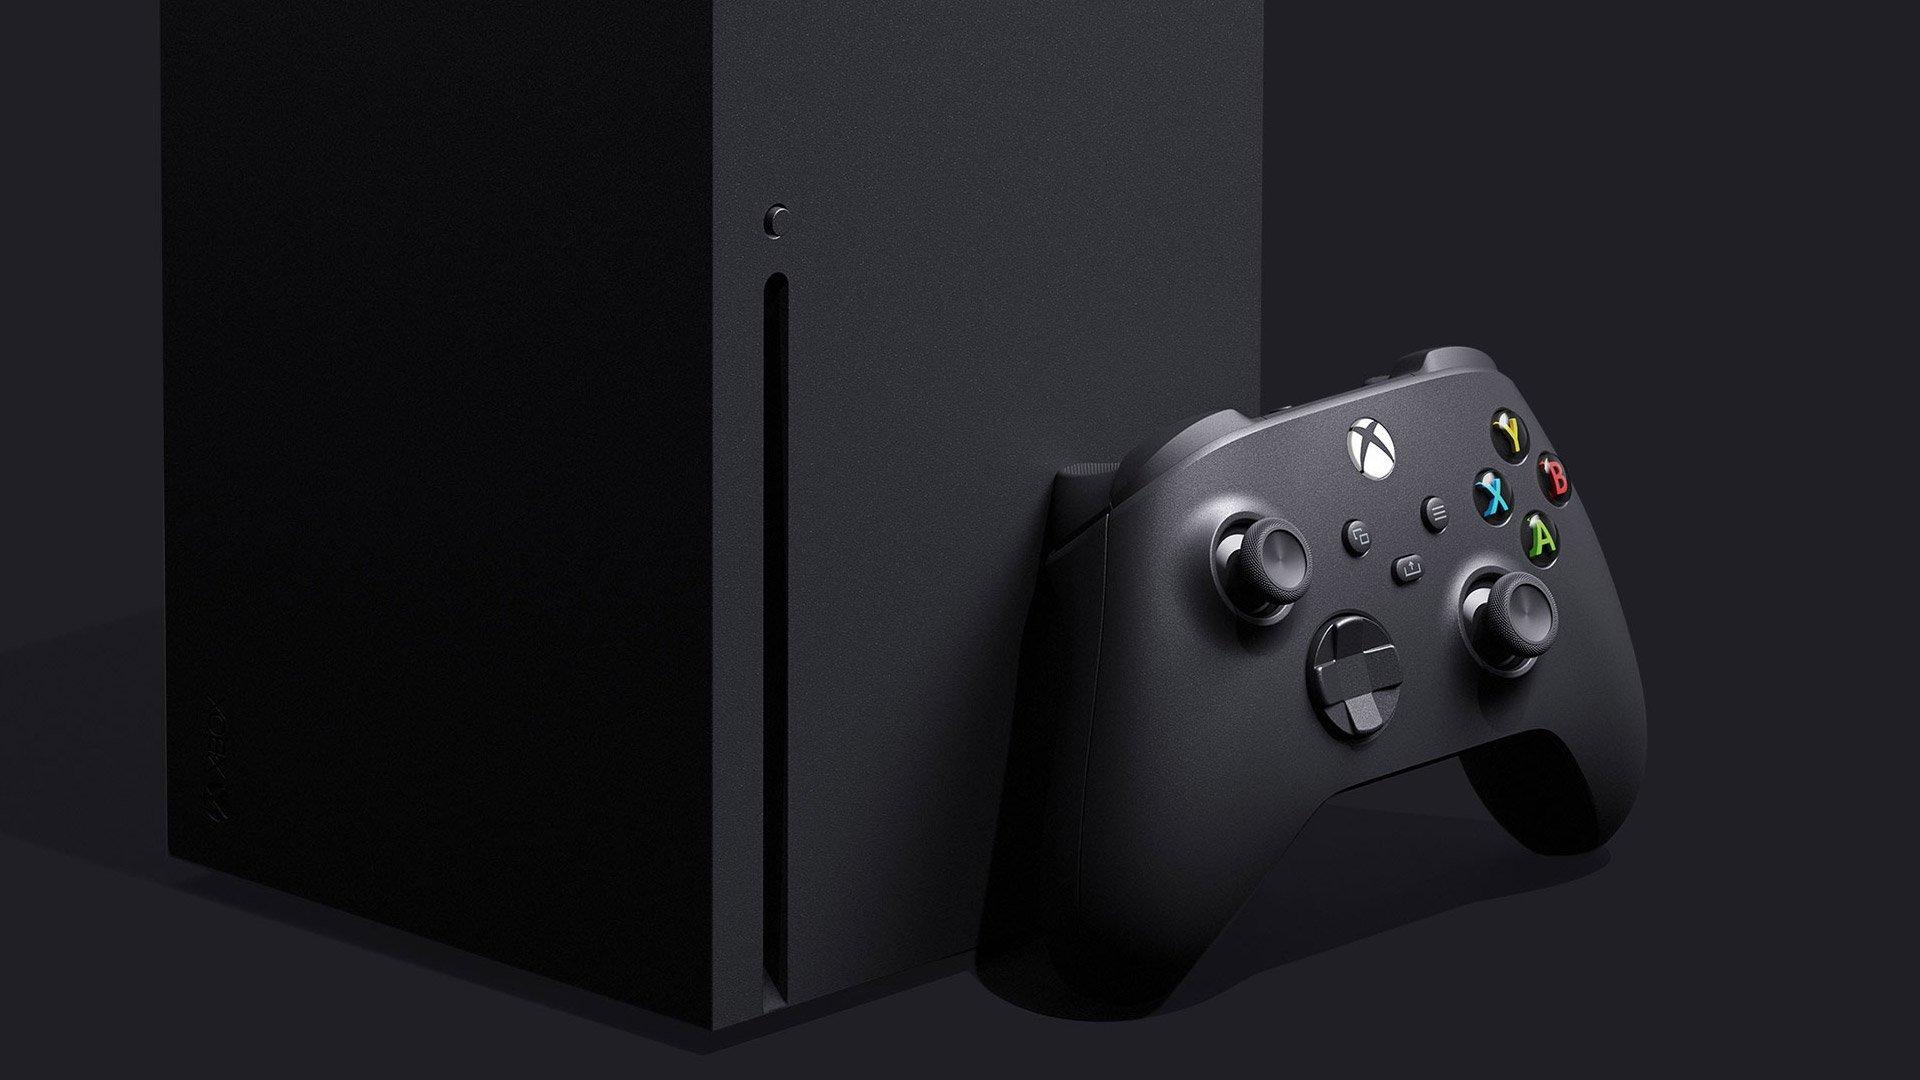 The Xbox One Series X controller has an improved d-pad and Share button.